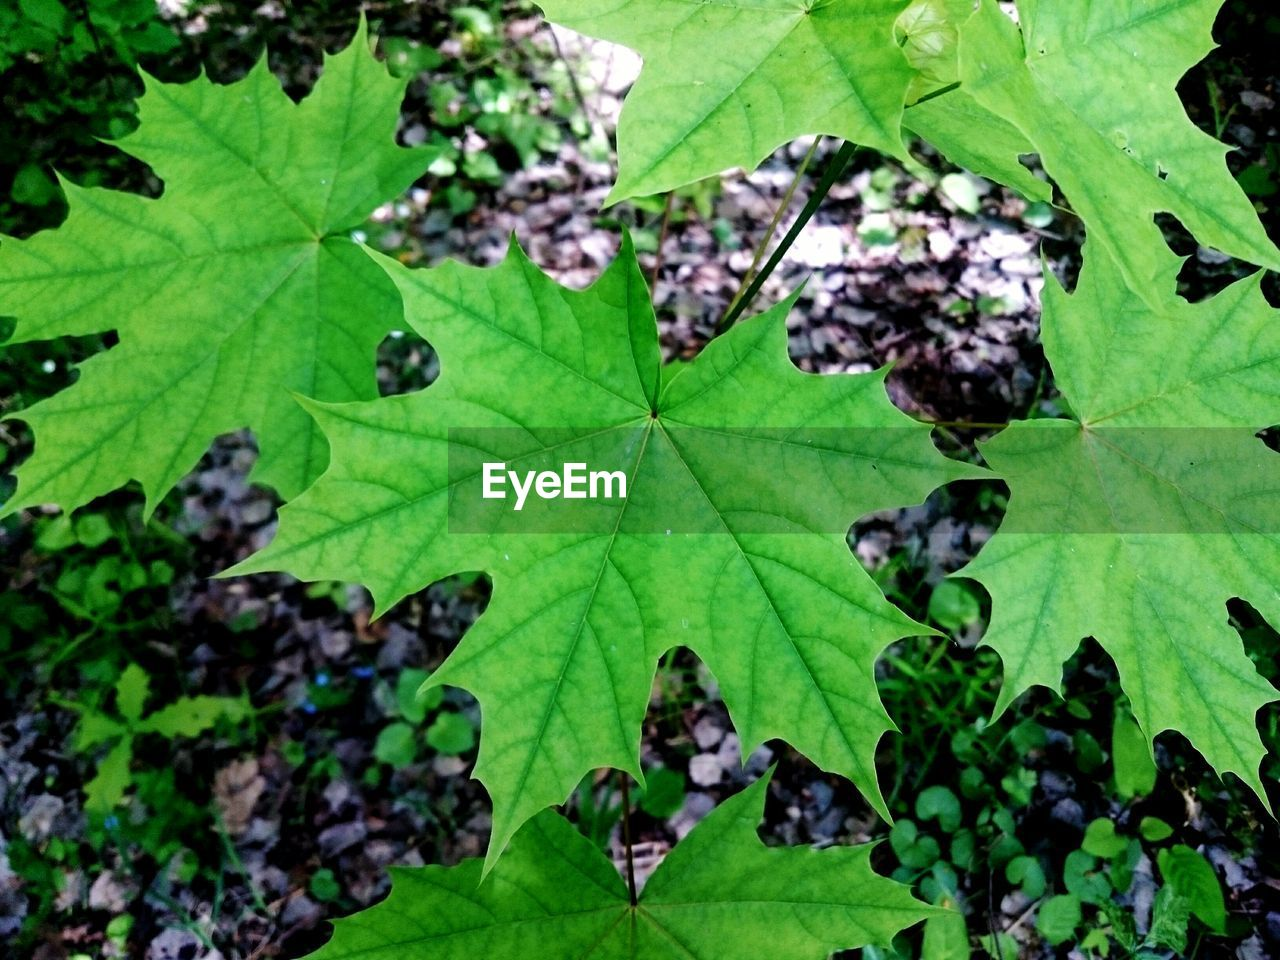 leaf, green color, nature, close-up, day, high angle view, no people, freshness, growth, outdoors, fragility, beauty in nature, water, animal themes, maple